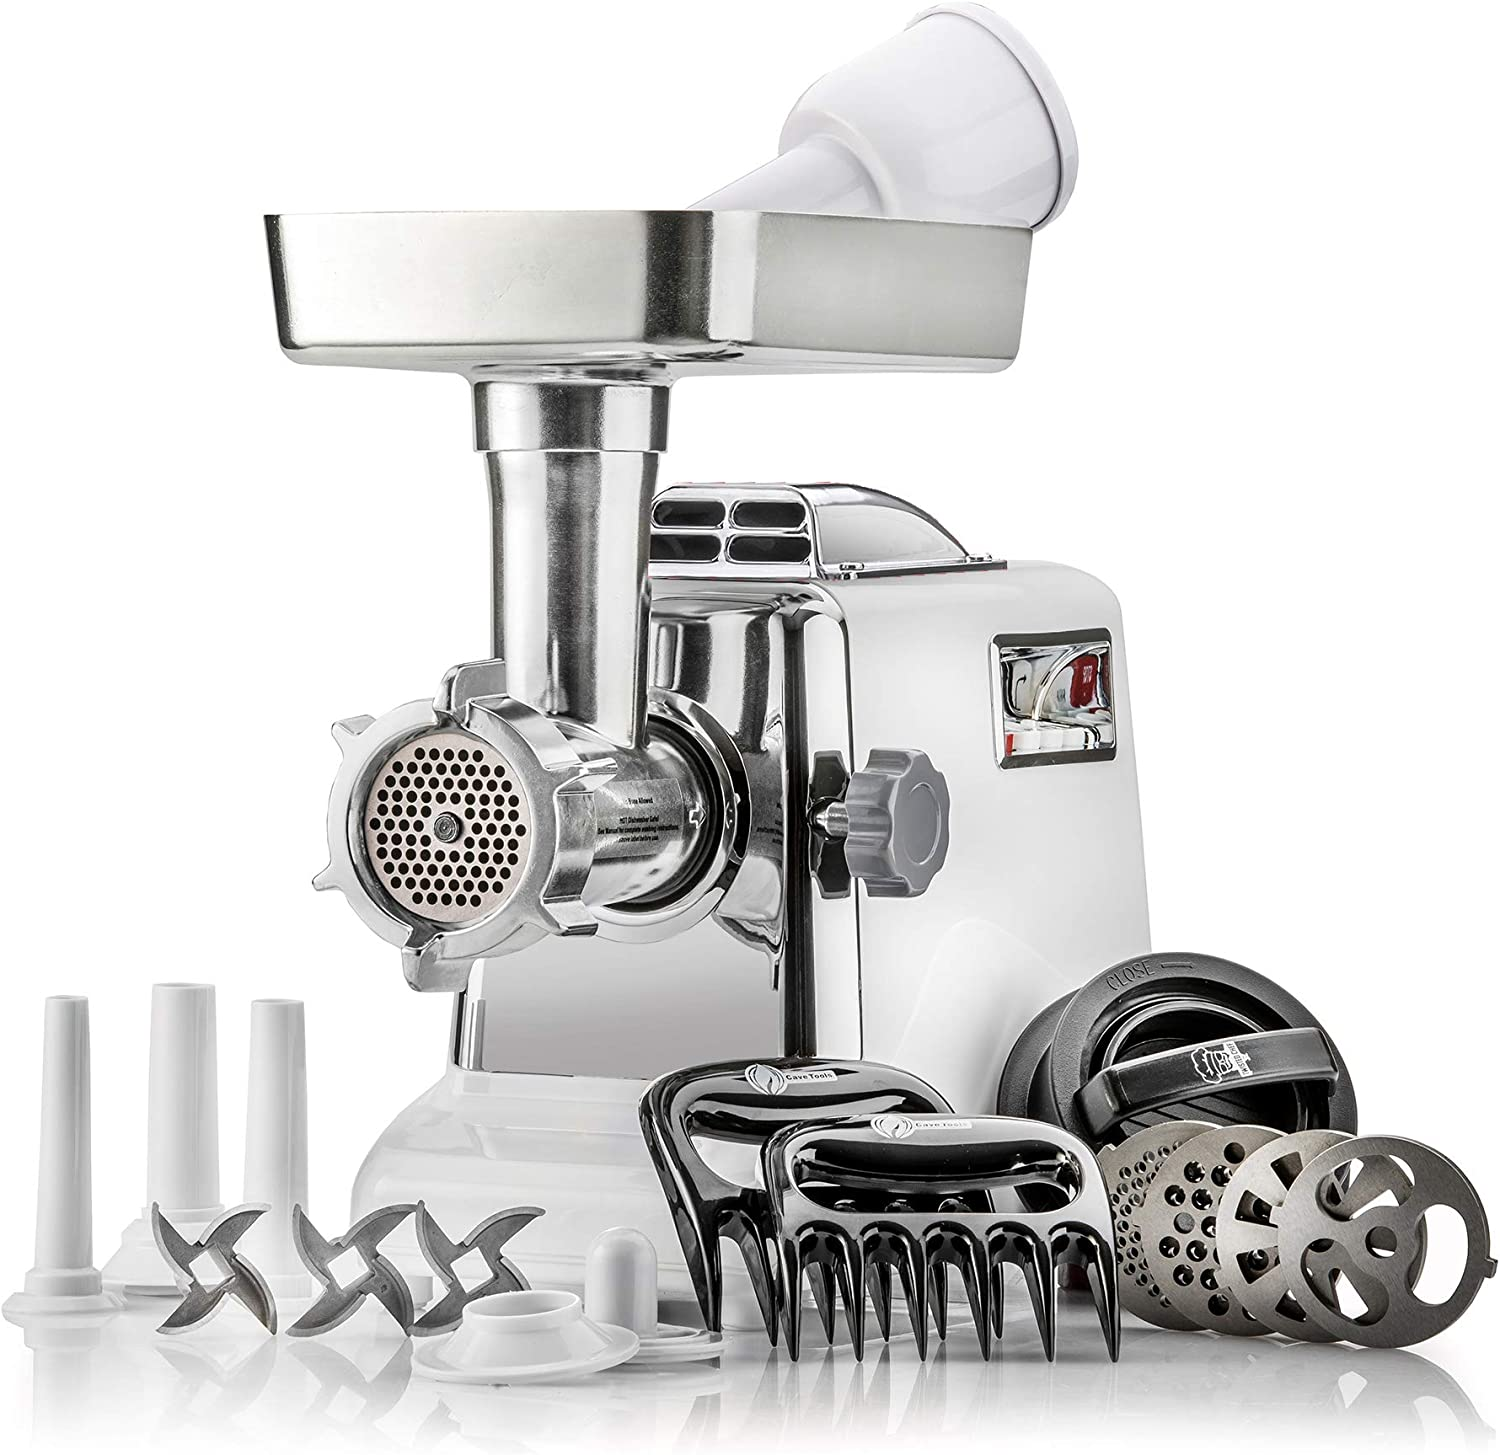 The Heavy-Duty STX Megaforce Classic 3000 Series Air Cooled Electric Meat Grinder Sausage Stuffer 4 Grinding Plates, 3 S S Blades, Sausage Tubes, Kubbe Maker. 2 Free Meat Claws 3-in-1 Patty Maker